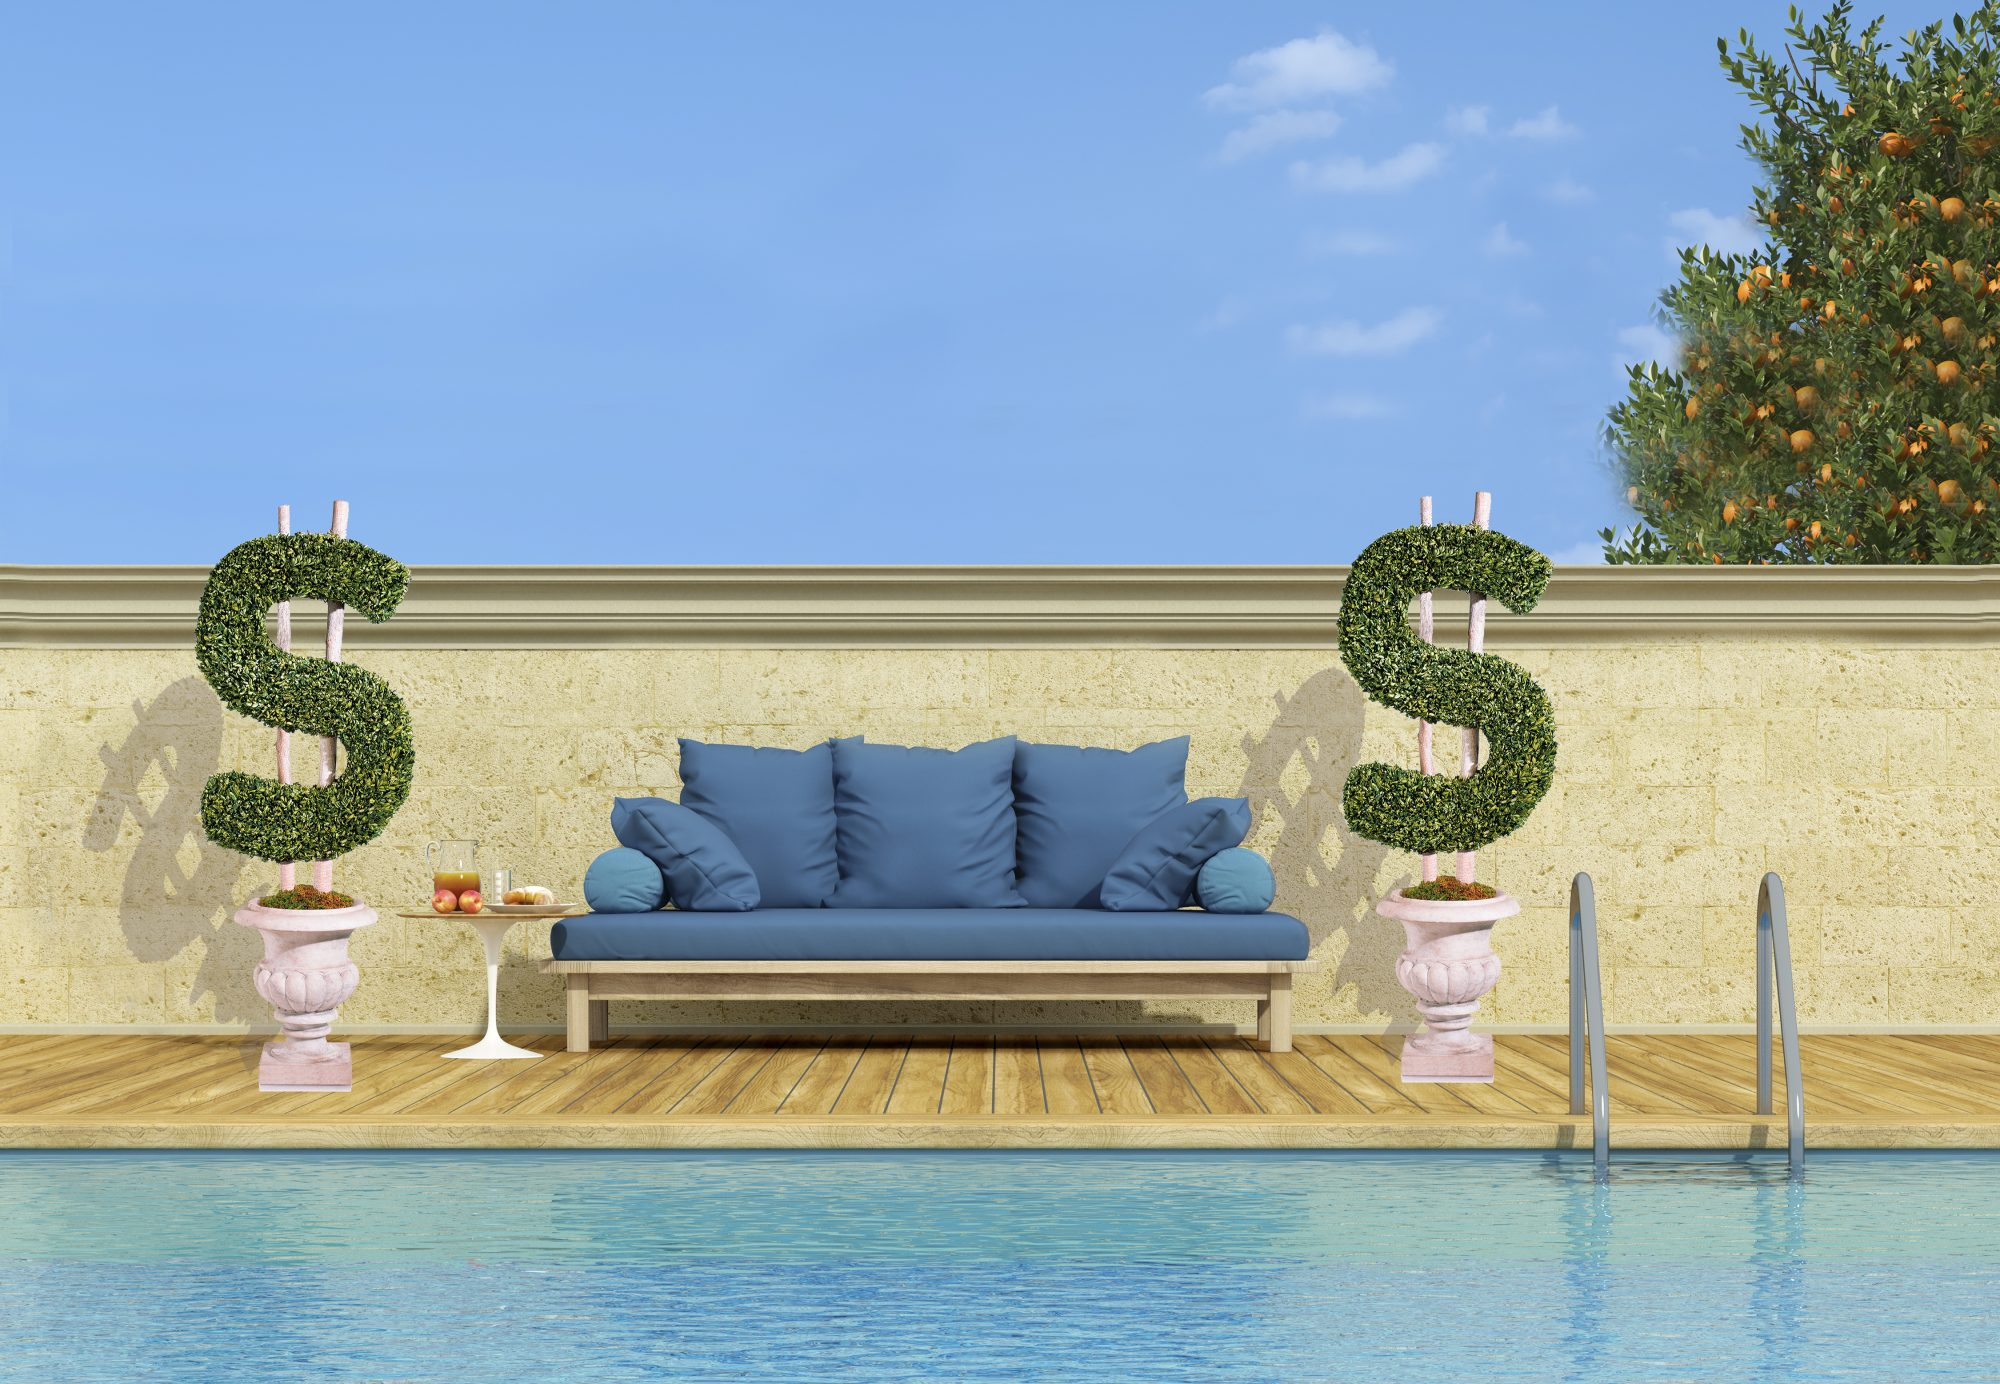 How Much Value a Pool Could Add to Your House, According to a New Study